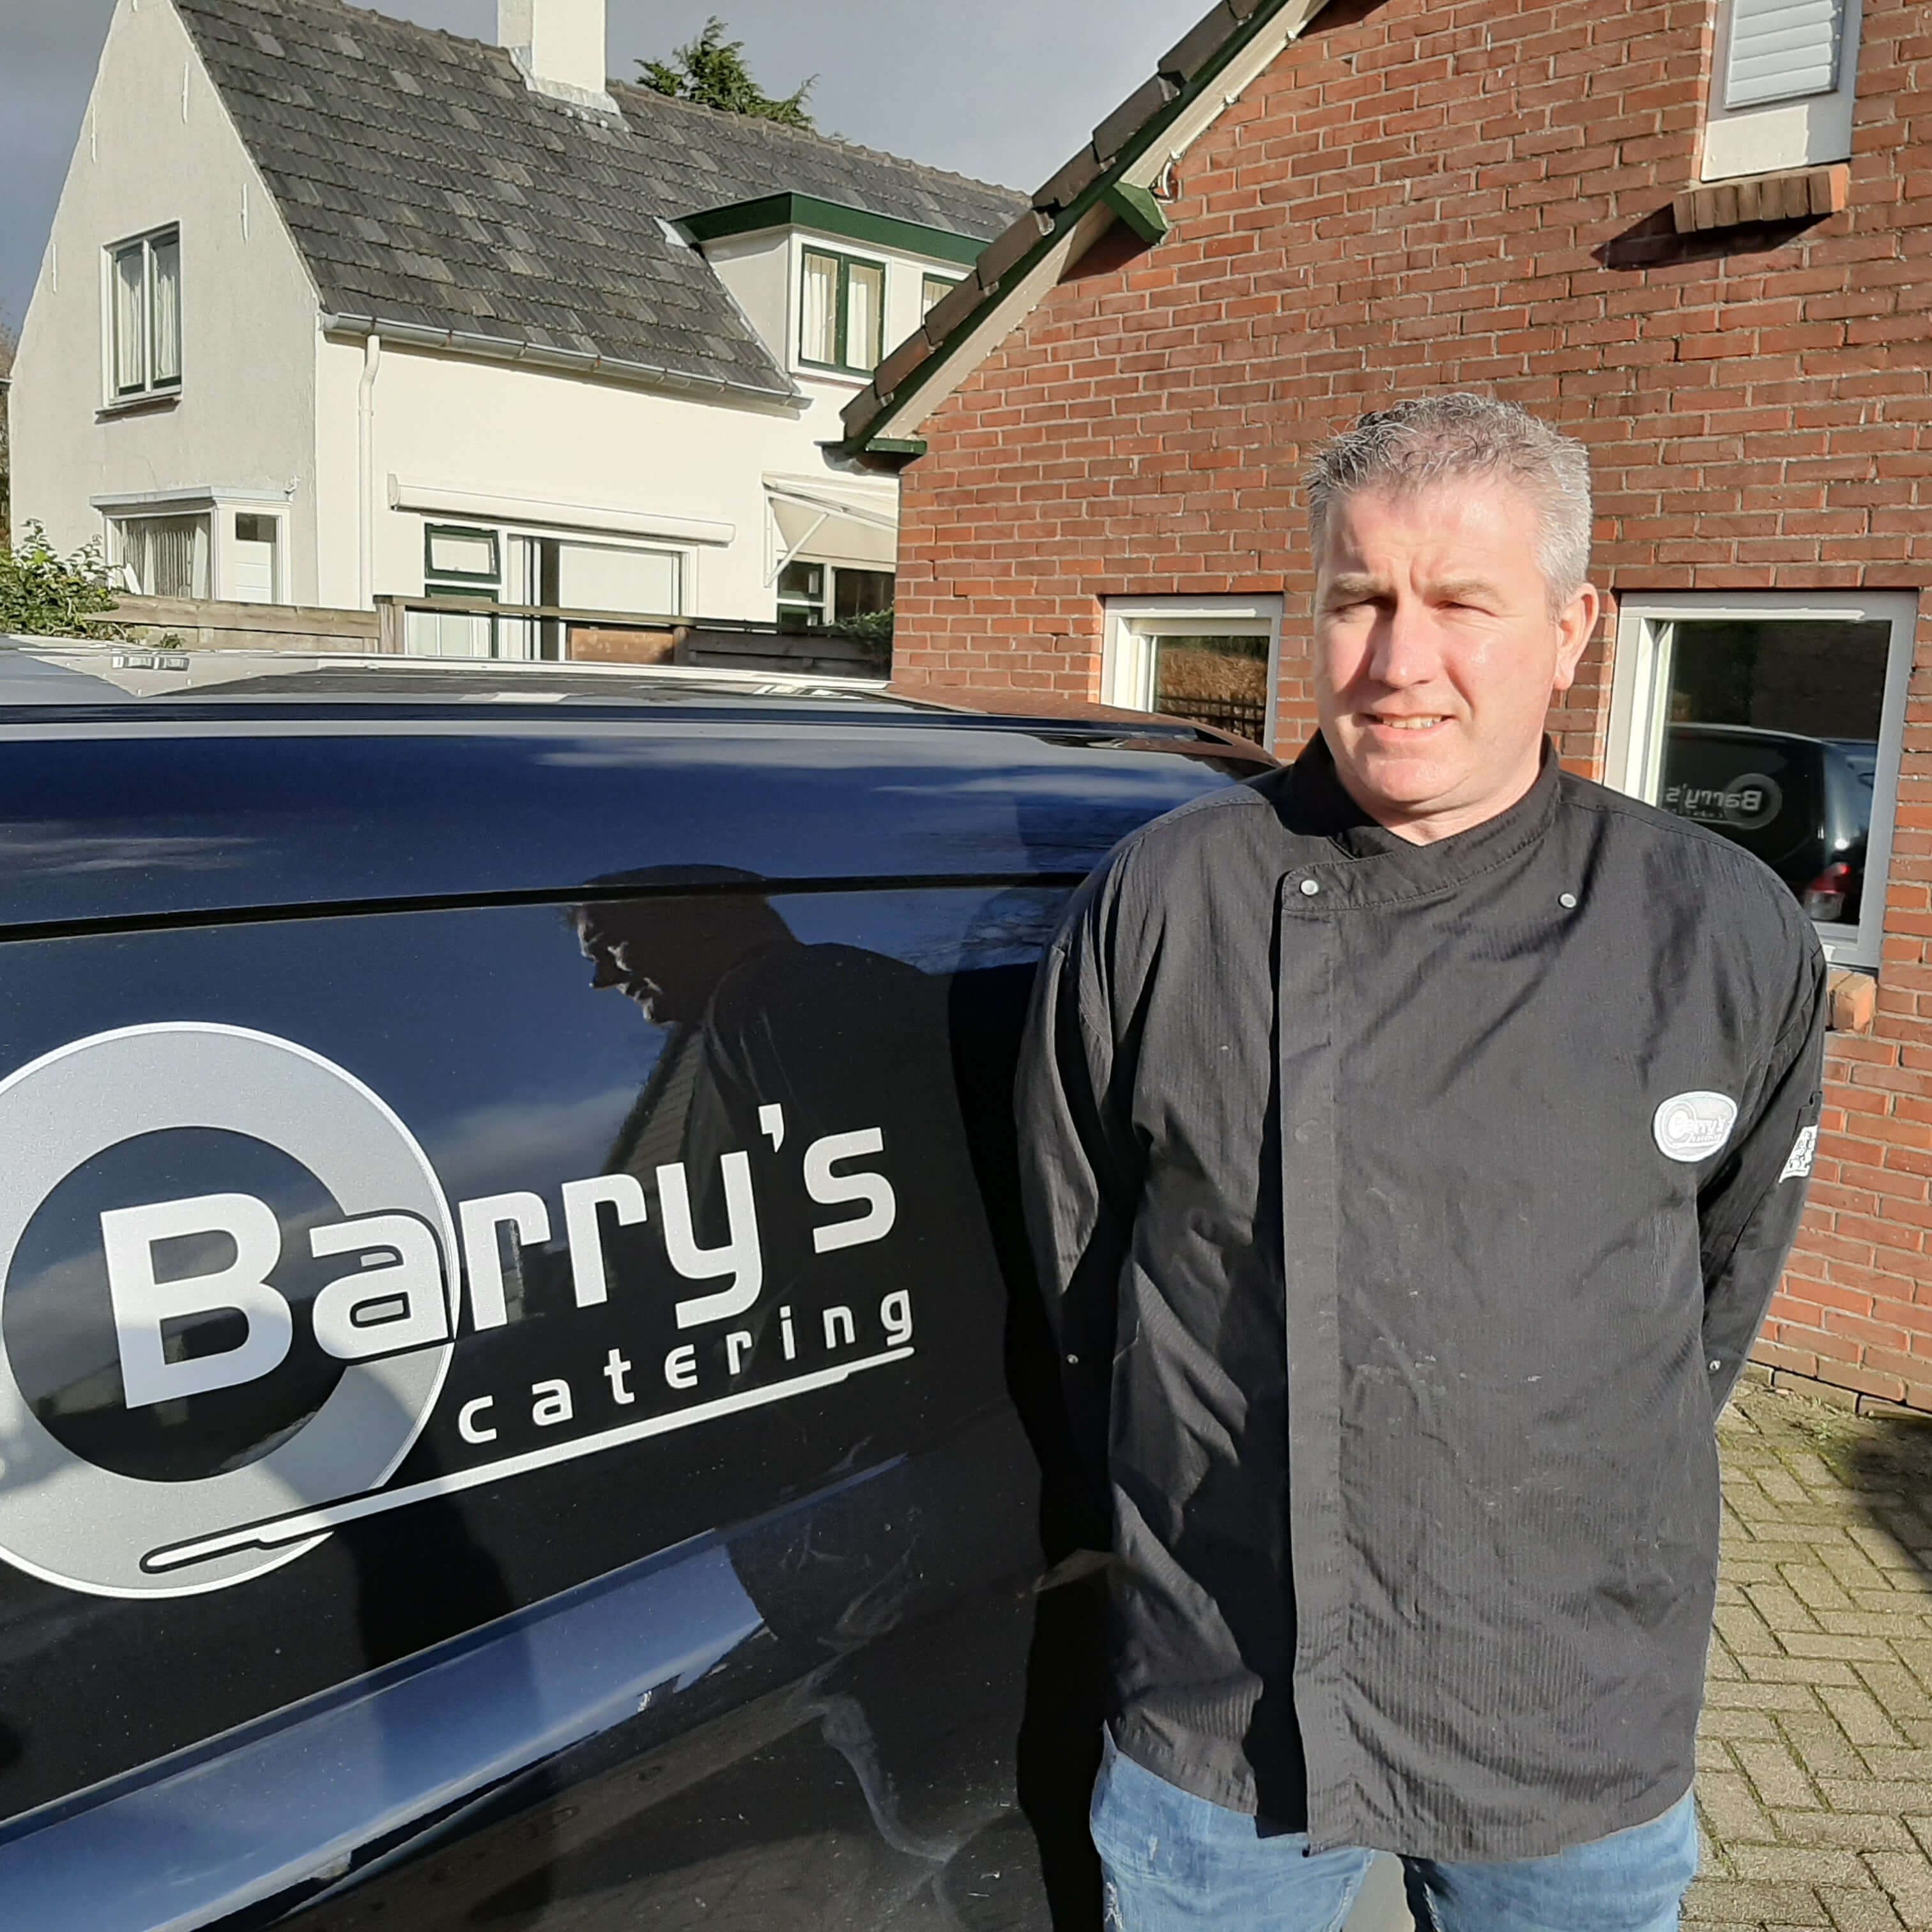 Barry Barry's catering